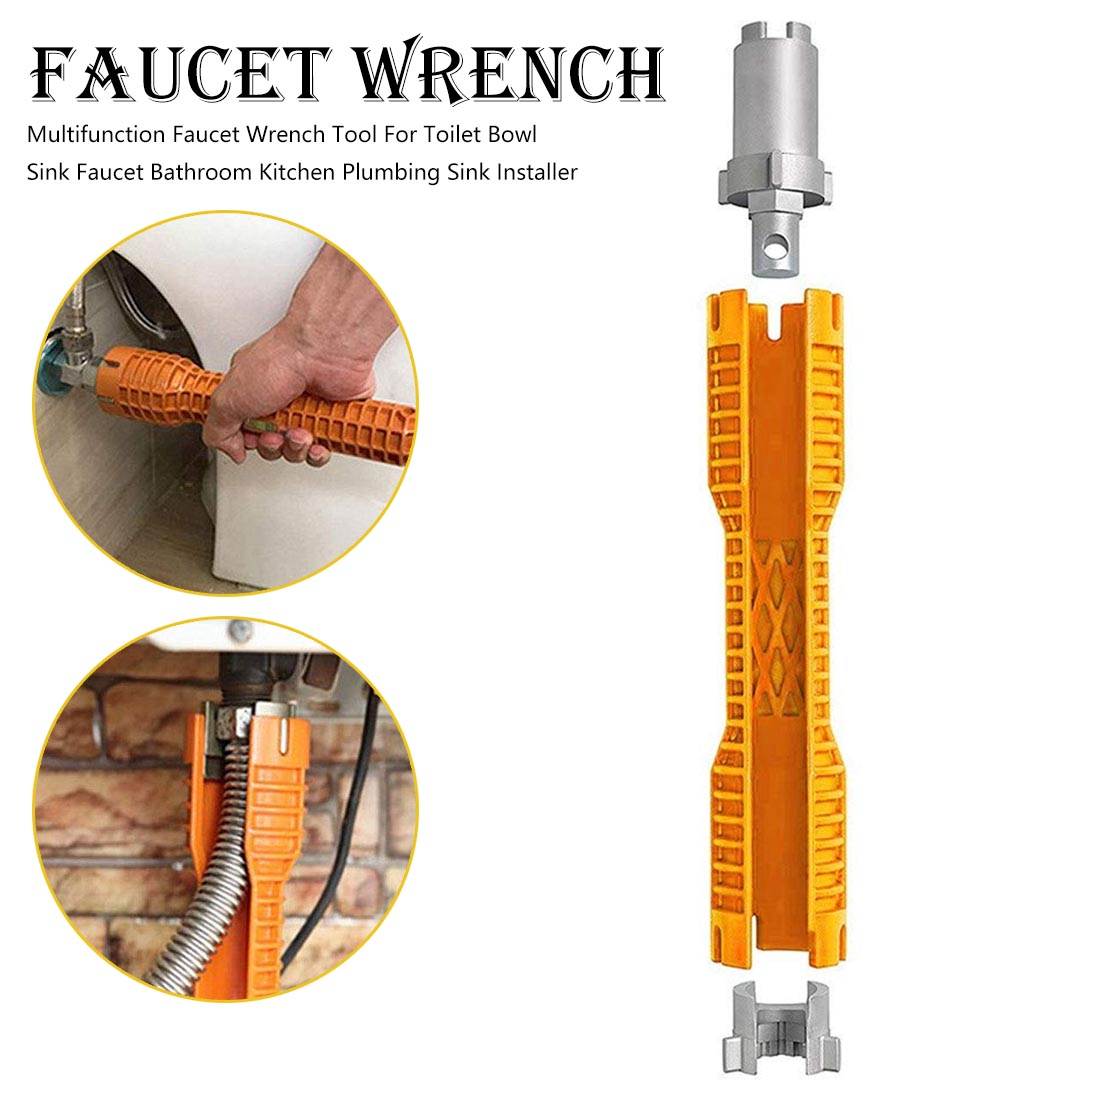 Faucet And Sink Installer Wrench Anti-Slip Handle Double Head Wrench Tool Extra-long Design Wrench Tools